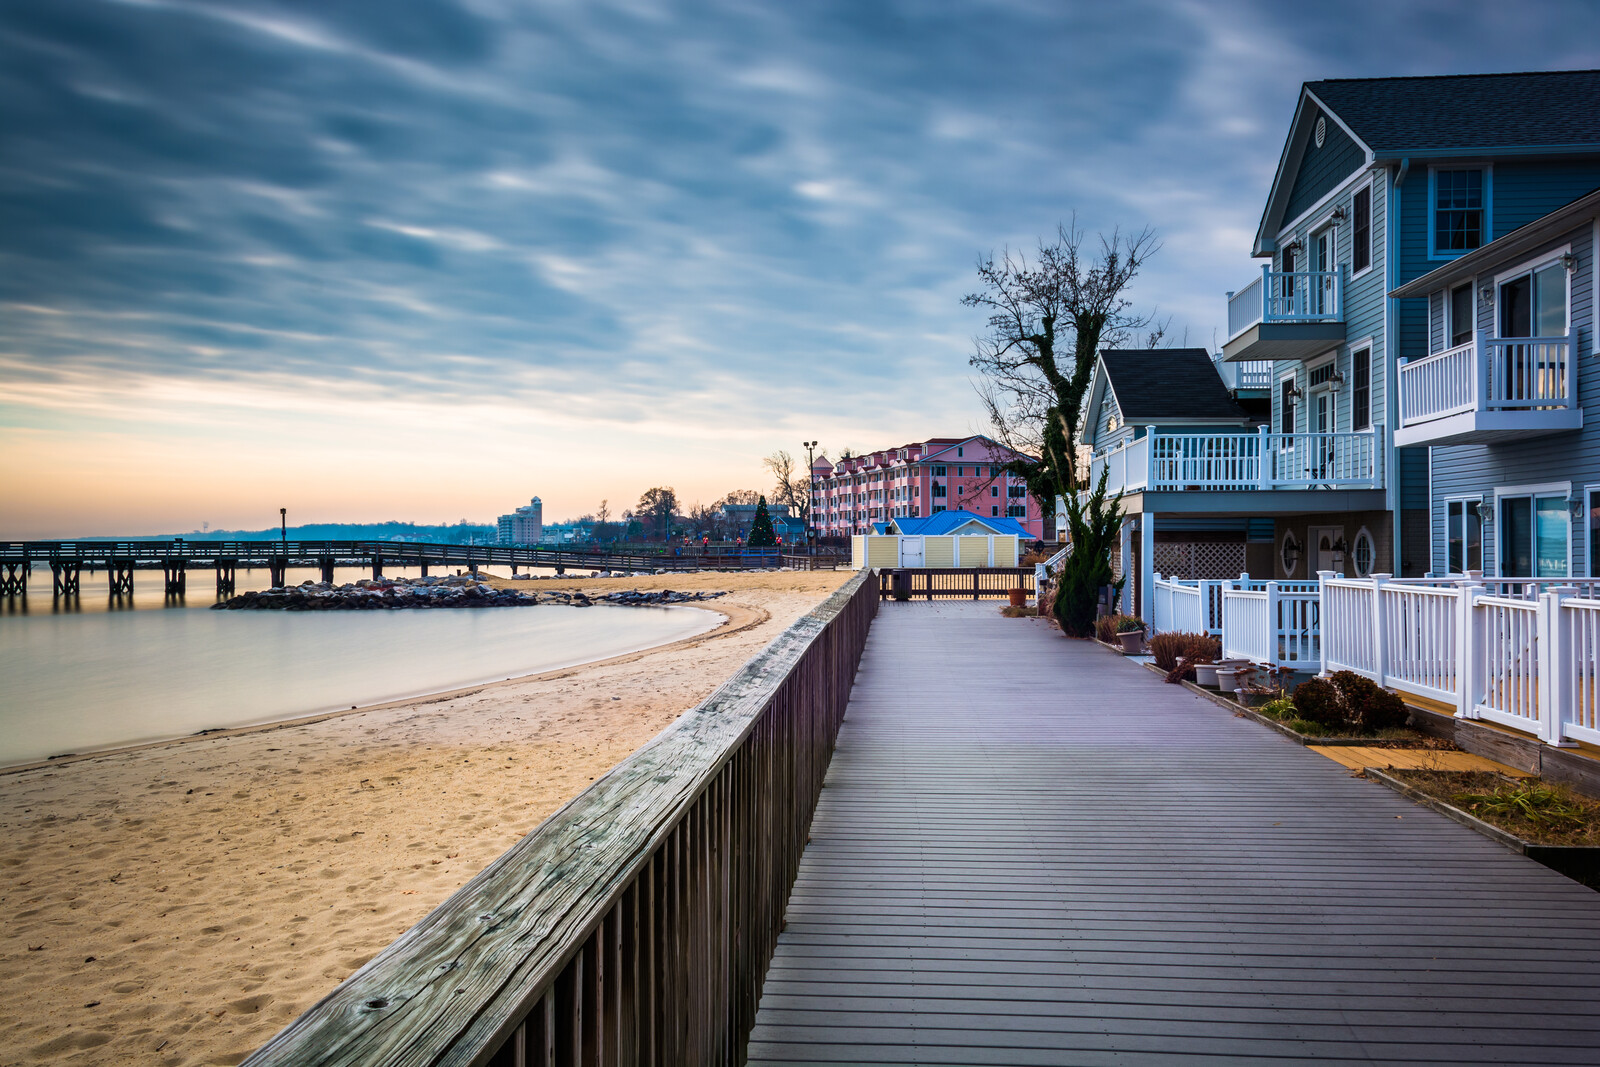 Best Places to Retire in Maryland - House on the boardwalk on the shore of the chesapeake bay, in north beach, maryland.